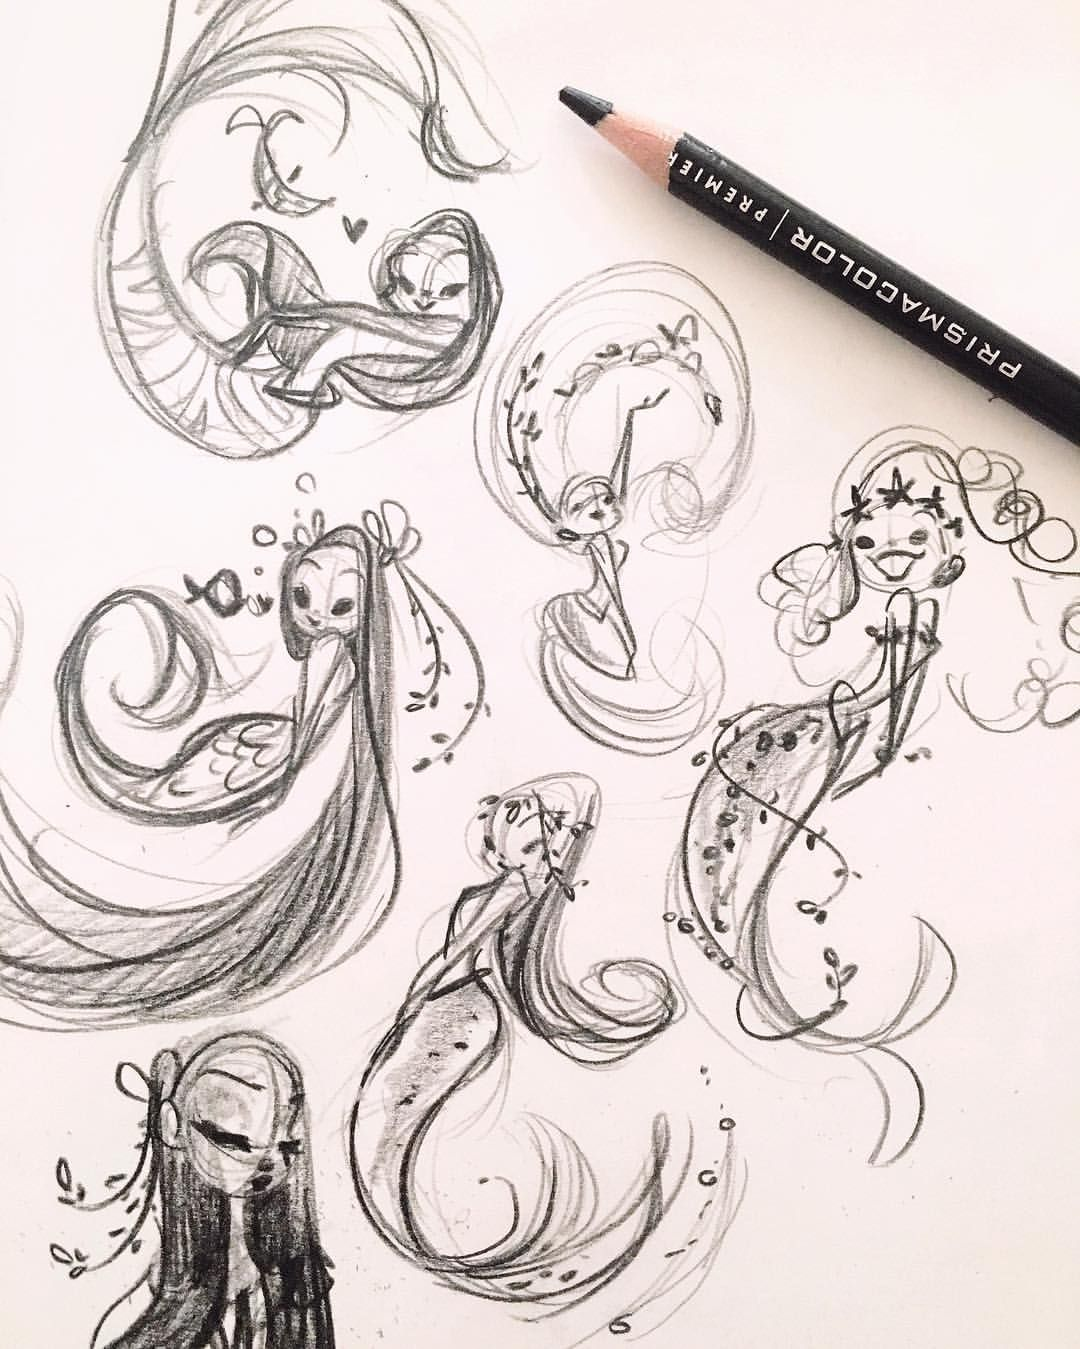 some rough concepts mythical mermaids show this weekend